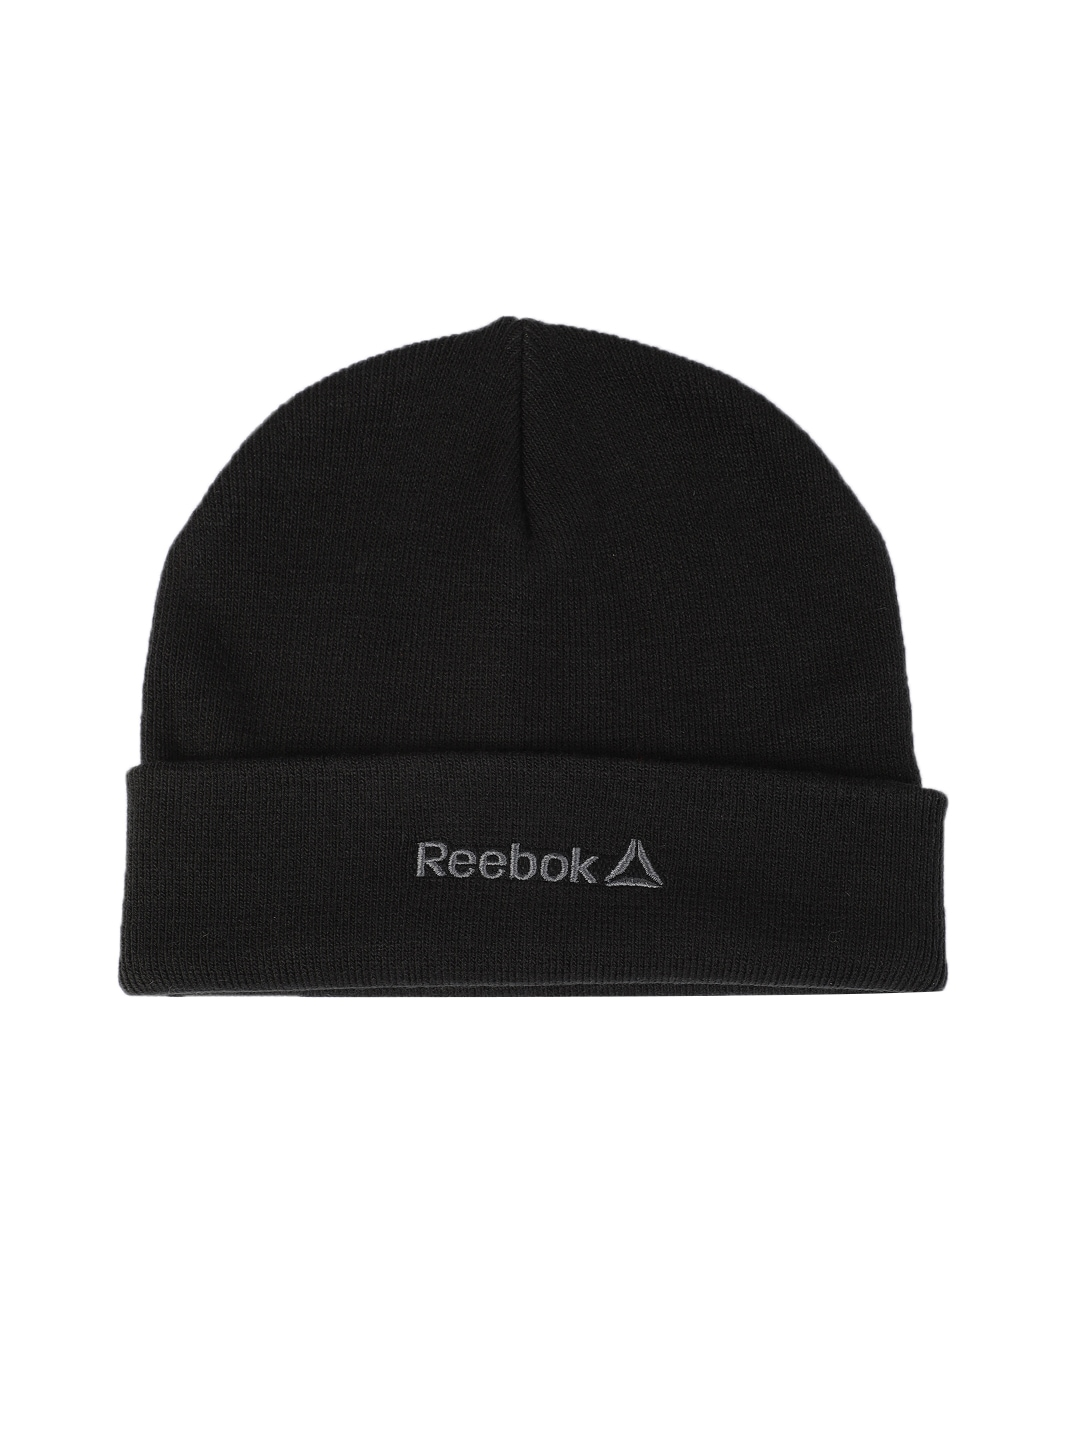 Beanie Caps - Buy Beanie Caps online in India d7dd4376f6f